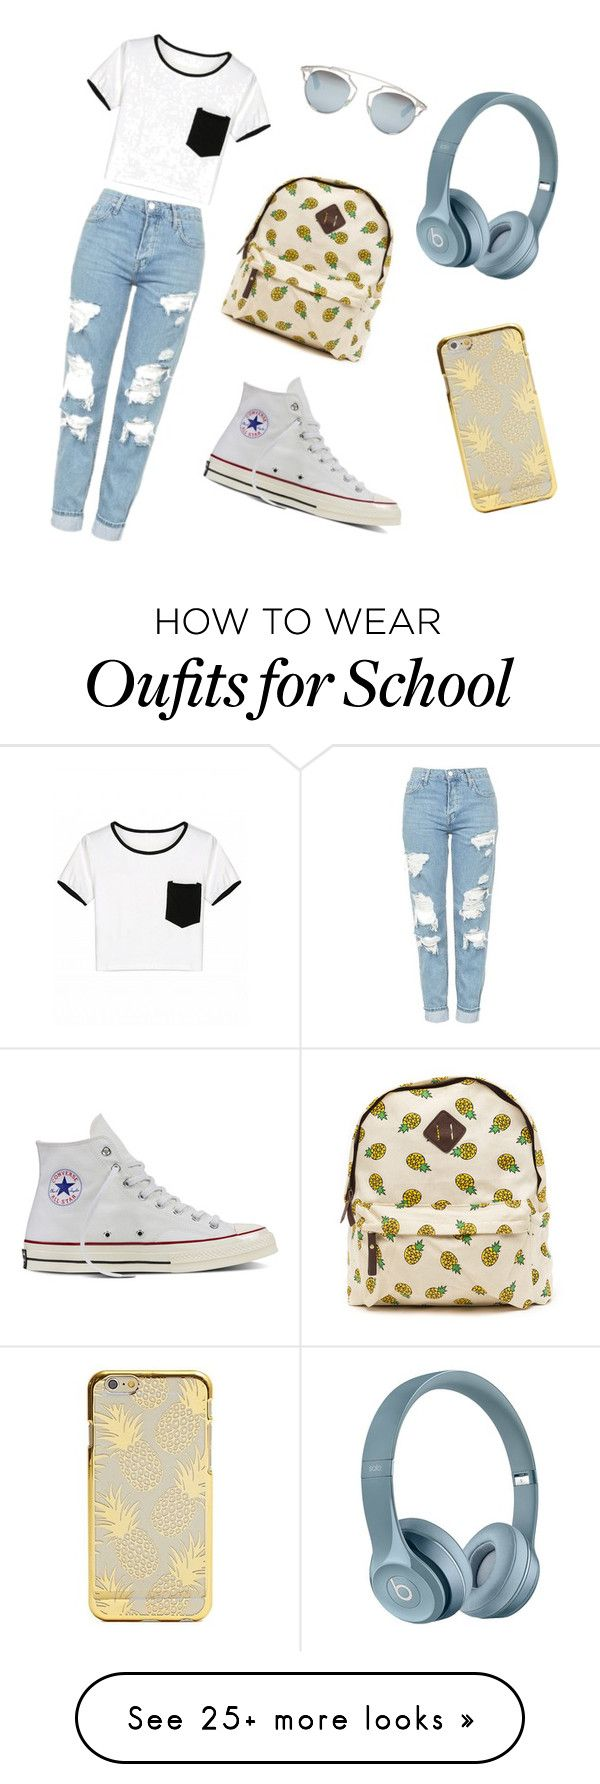 """School style"" by qetevaniioseliani15 on Polyvore featuring Topshop, Converse and Christian Dior"